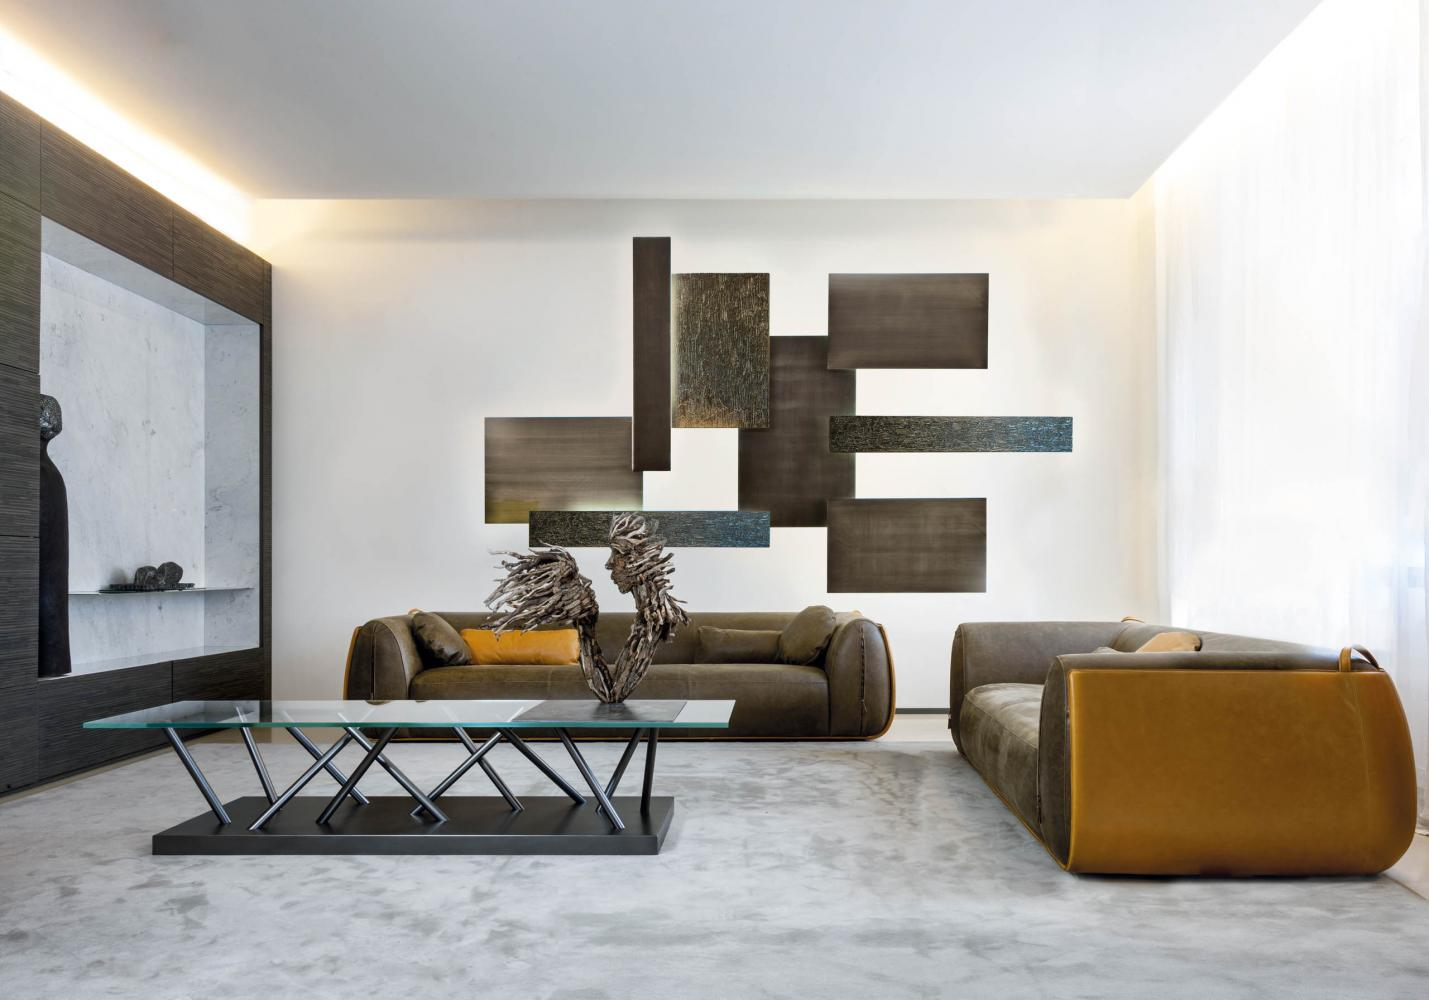 Made to measure luxury day cabinet system for modern living rooms